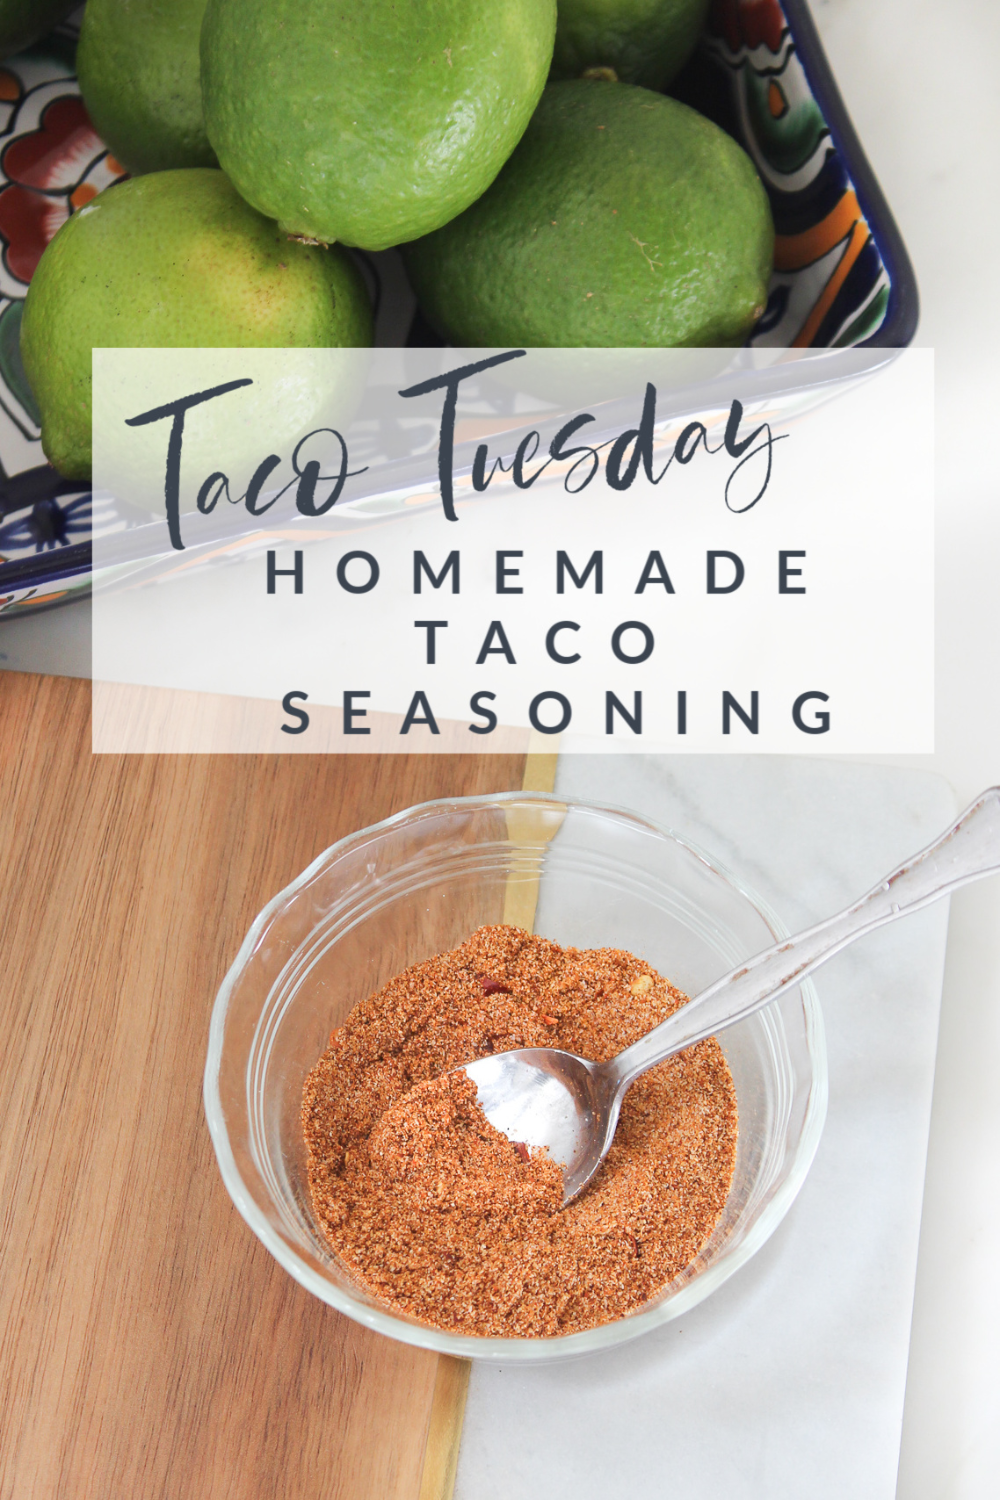 Taco Tuesday || Homemade Taco Seasoning - Southern State of Mind Blog by Heather